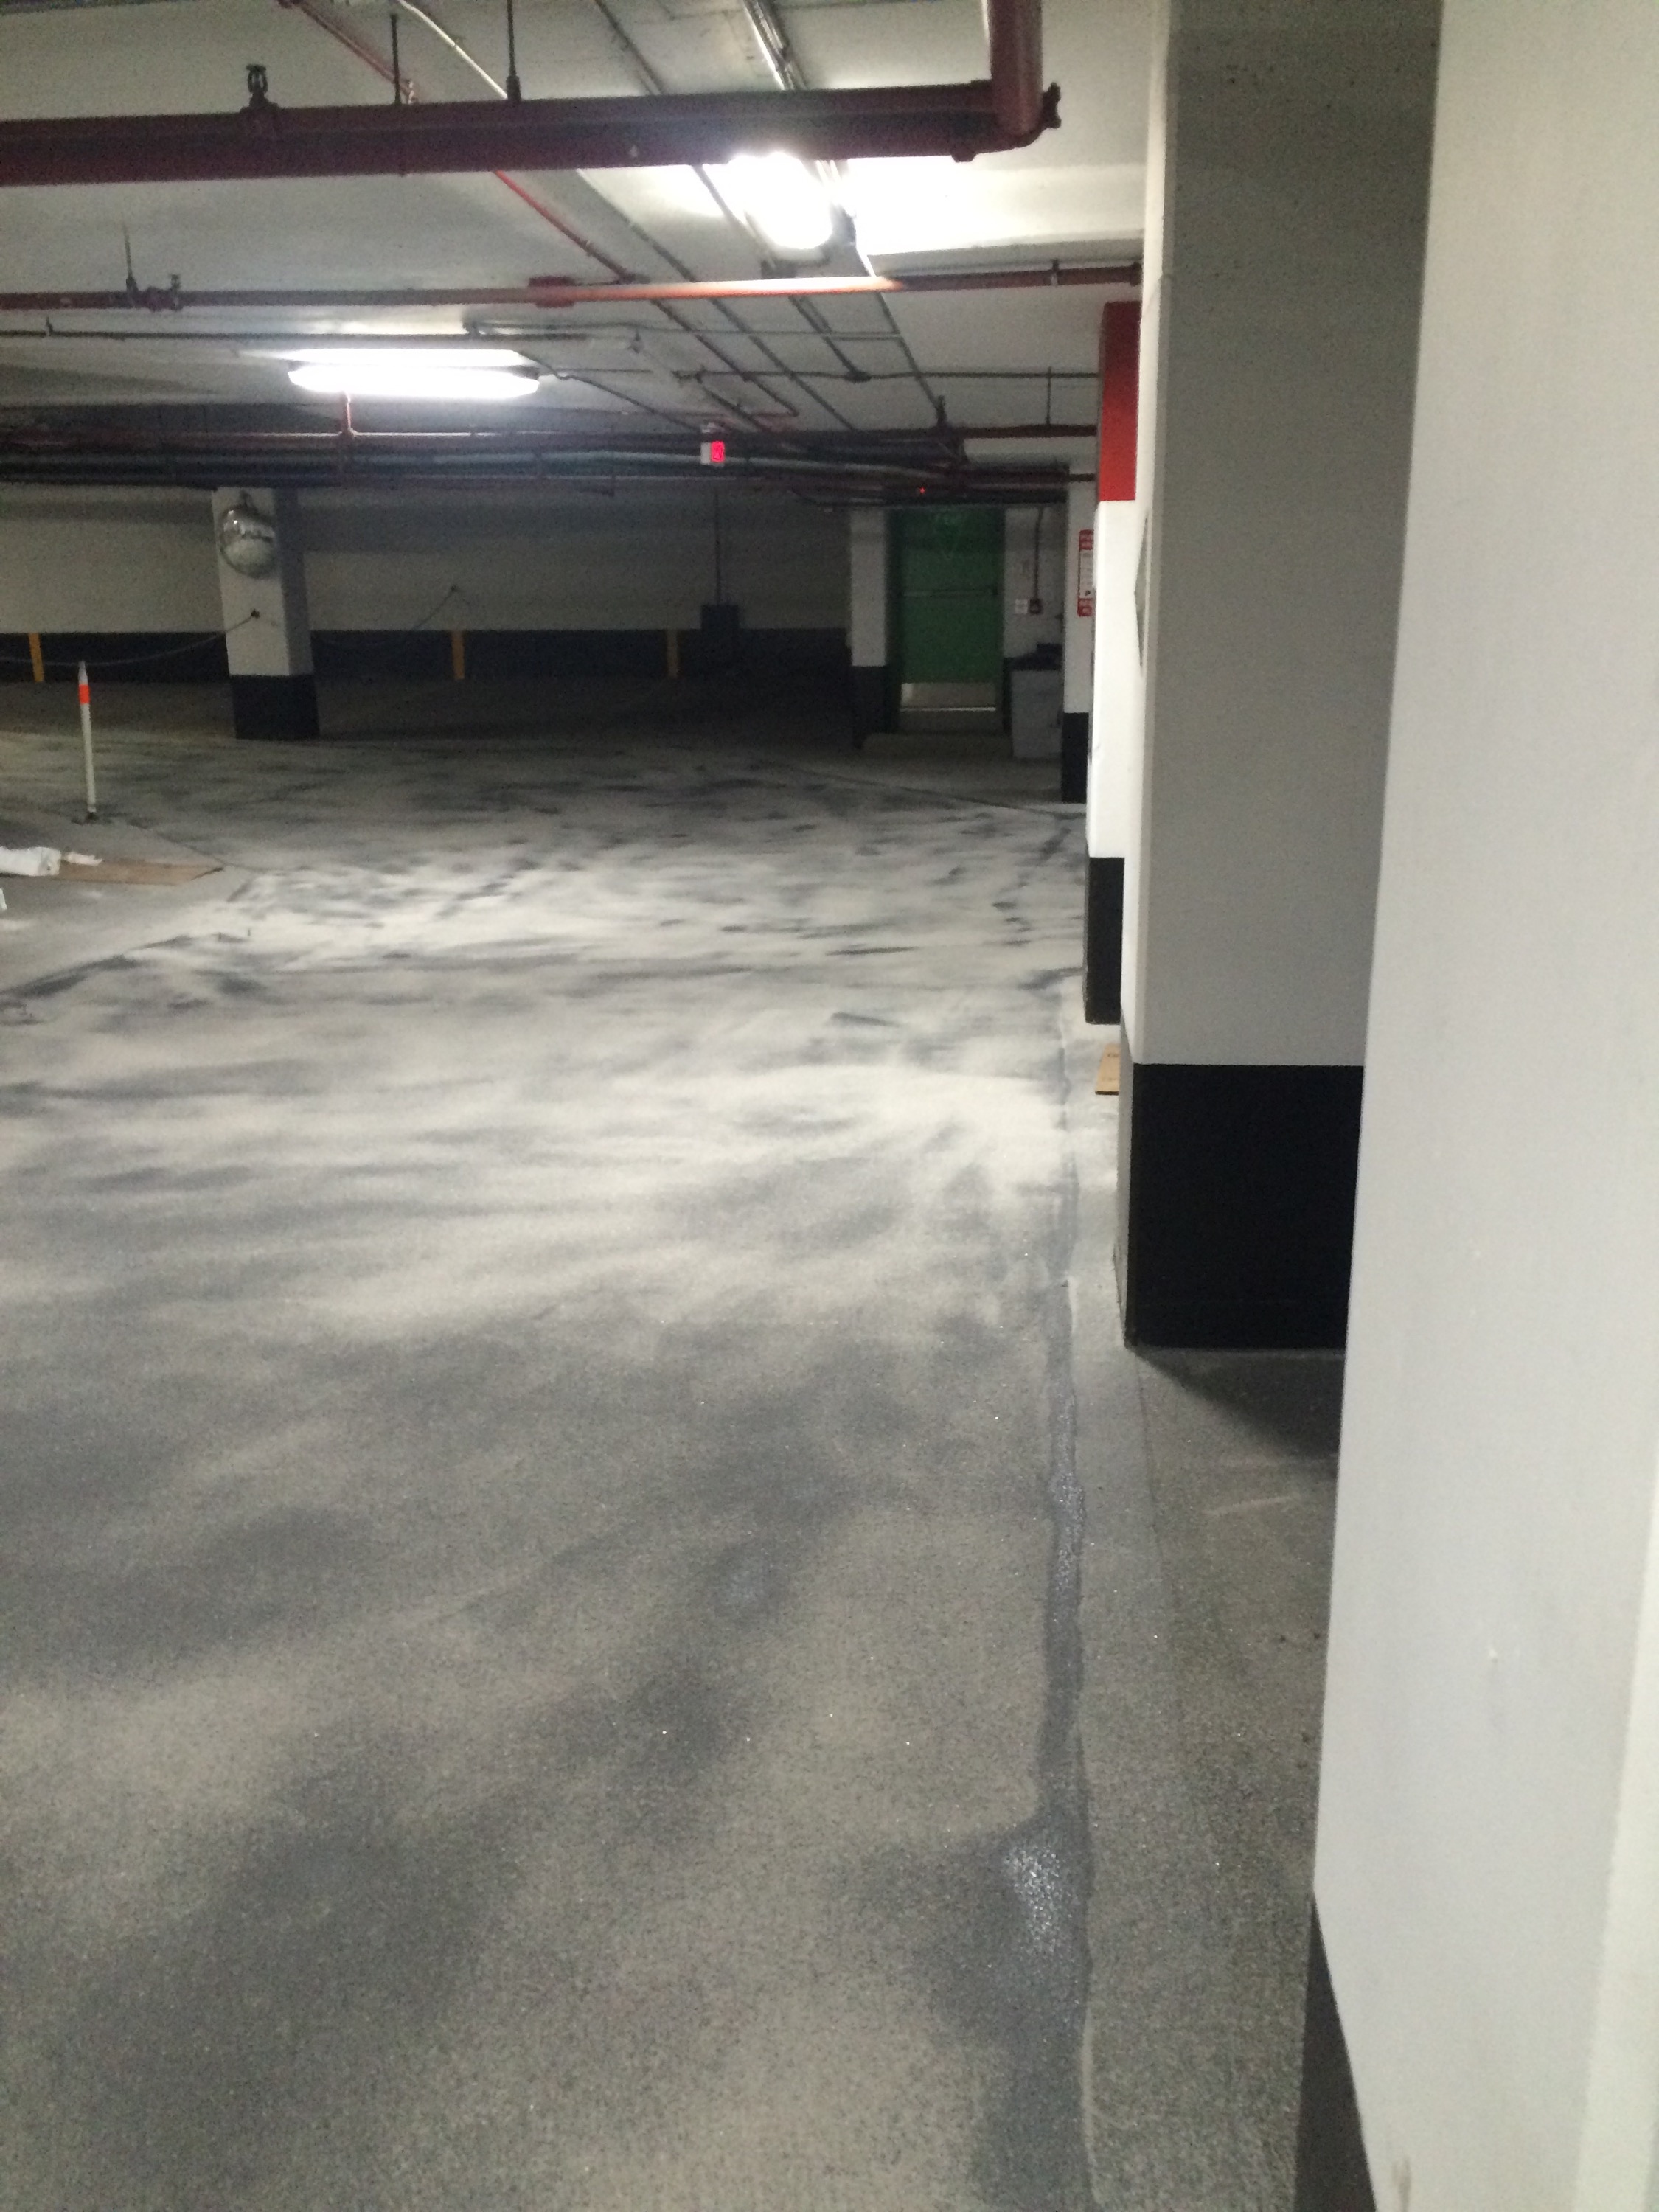 Epoxy Garage Floor Toronto Parking Garage Floor Toronto Main Exit Ramp Waterproof Traffic